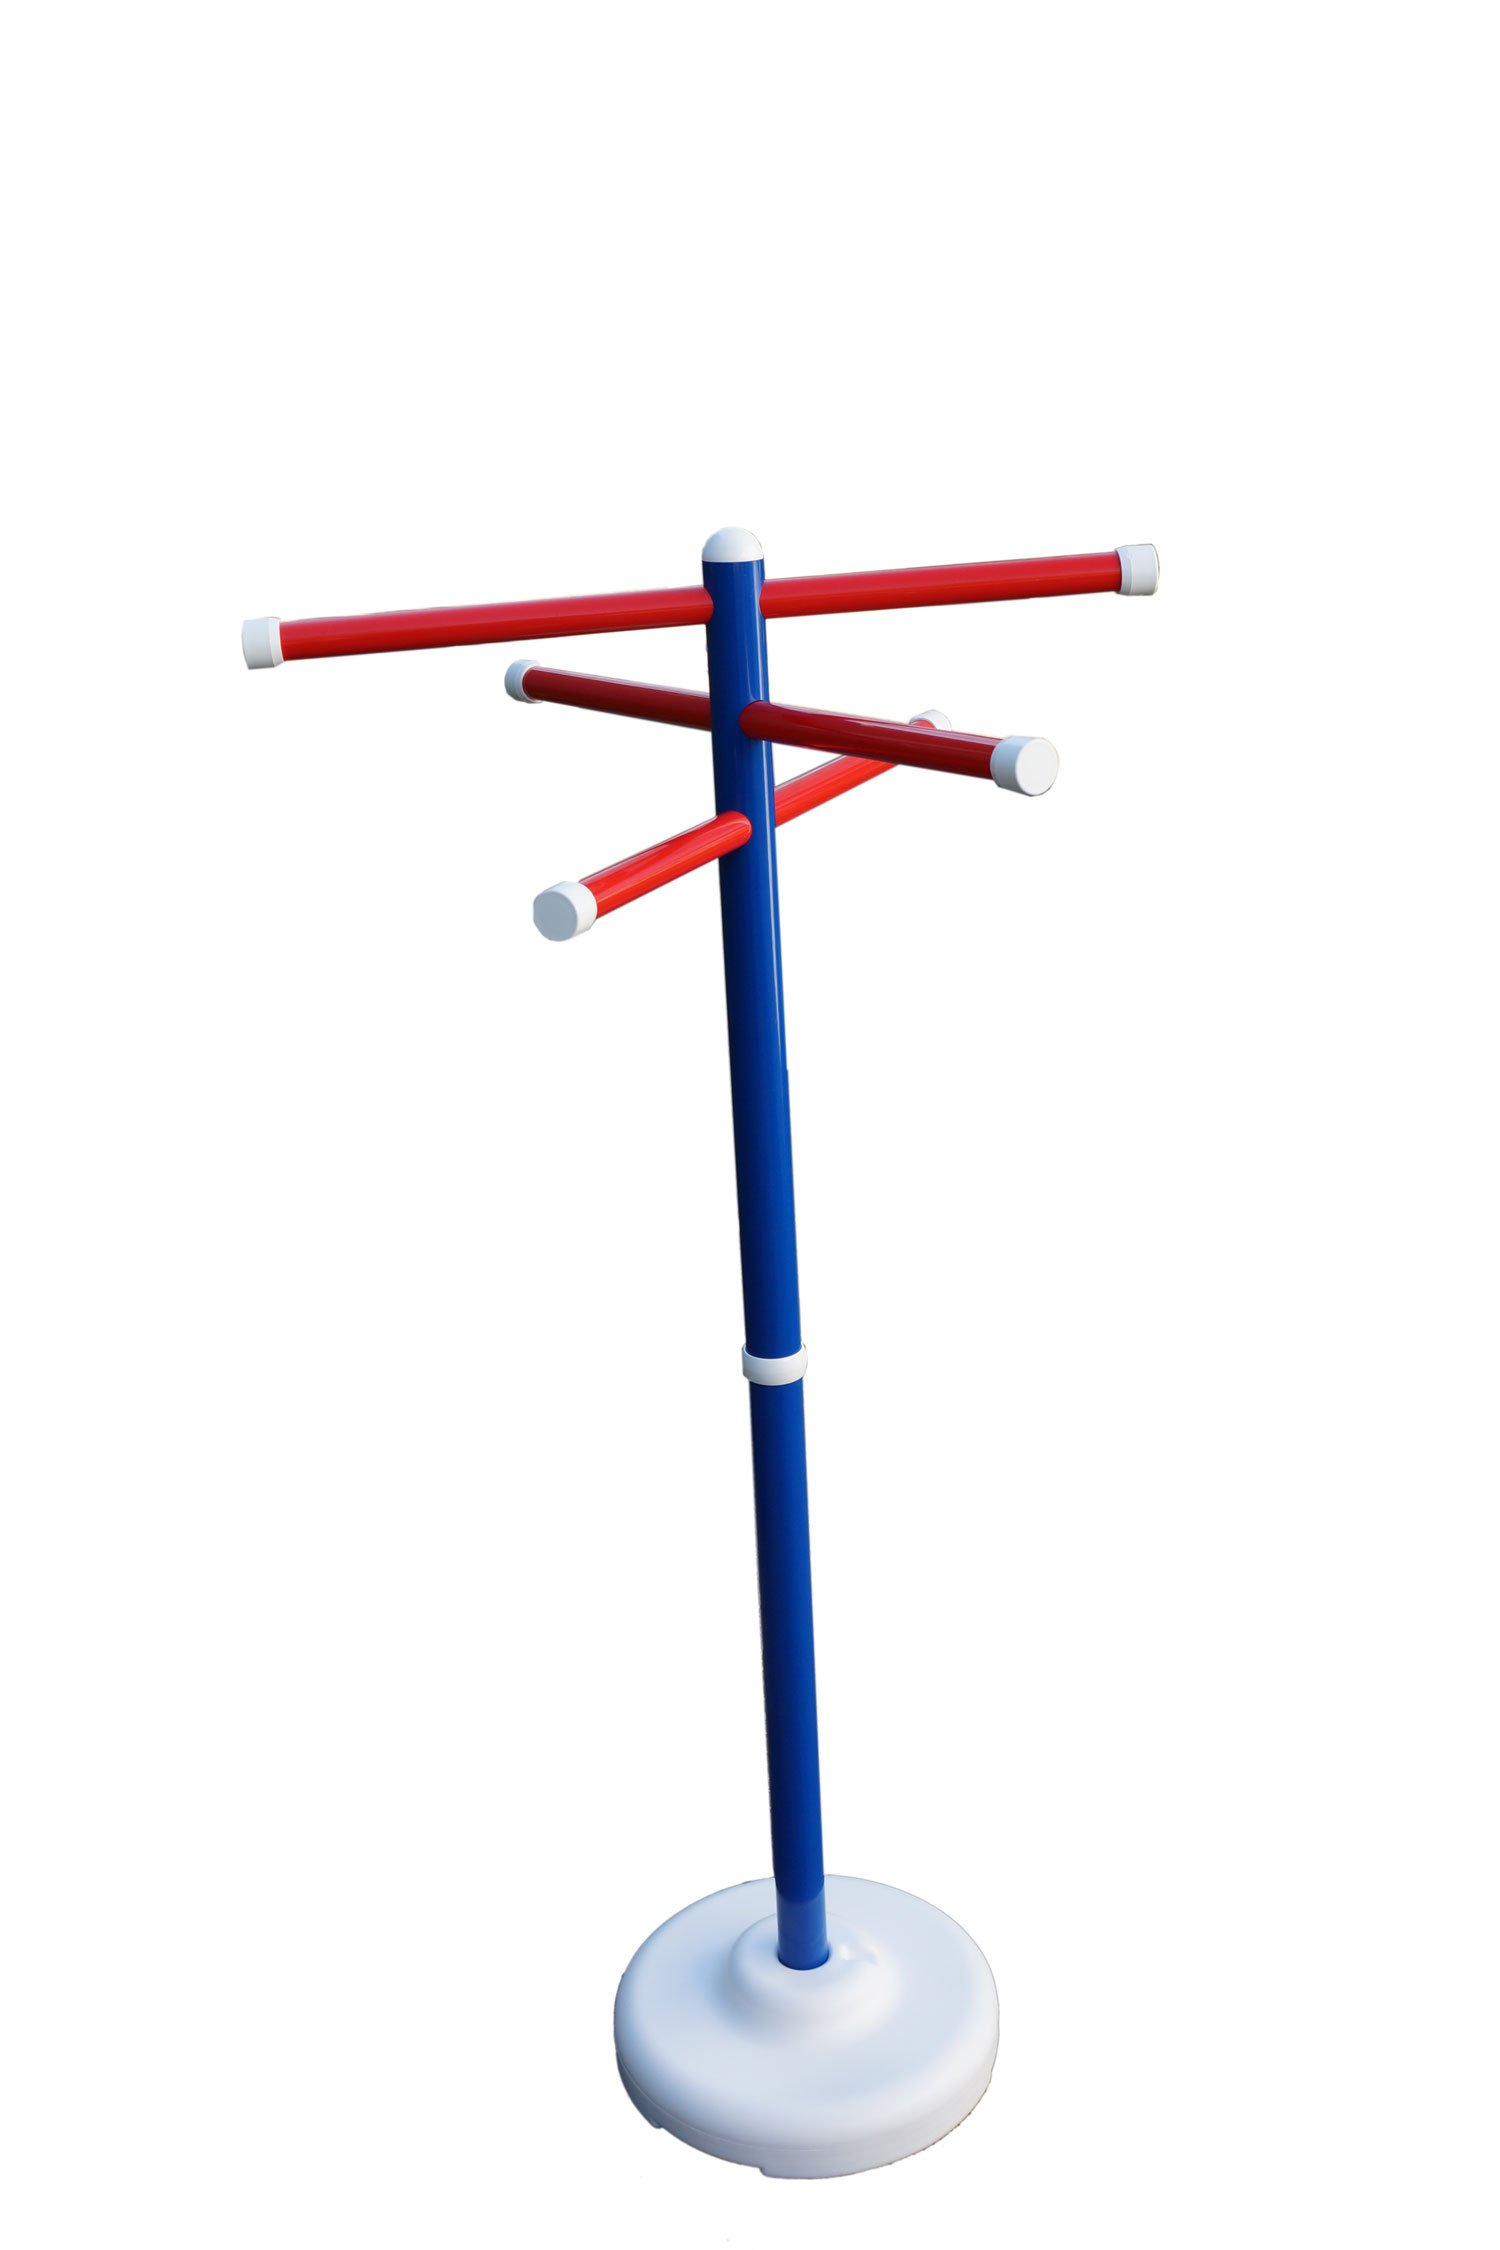 Outdoor Lamp Company Patriotic Spa and Pool Towel Rack. This Red, White and Blue Portable Towel Holder is Proudly Made in the USA!